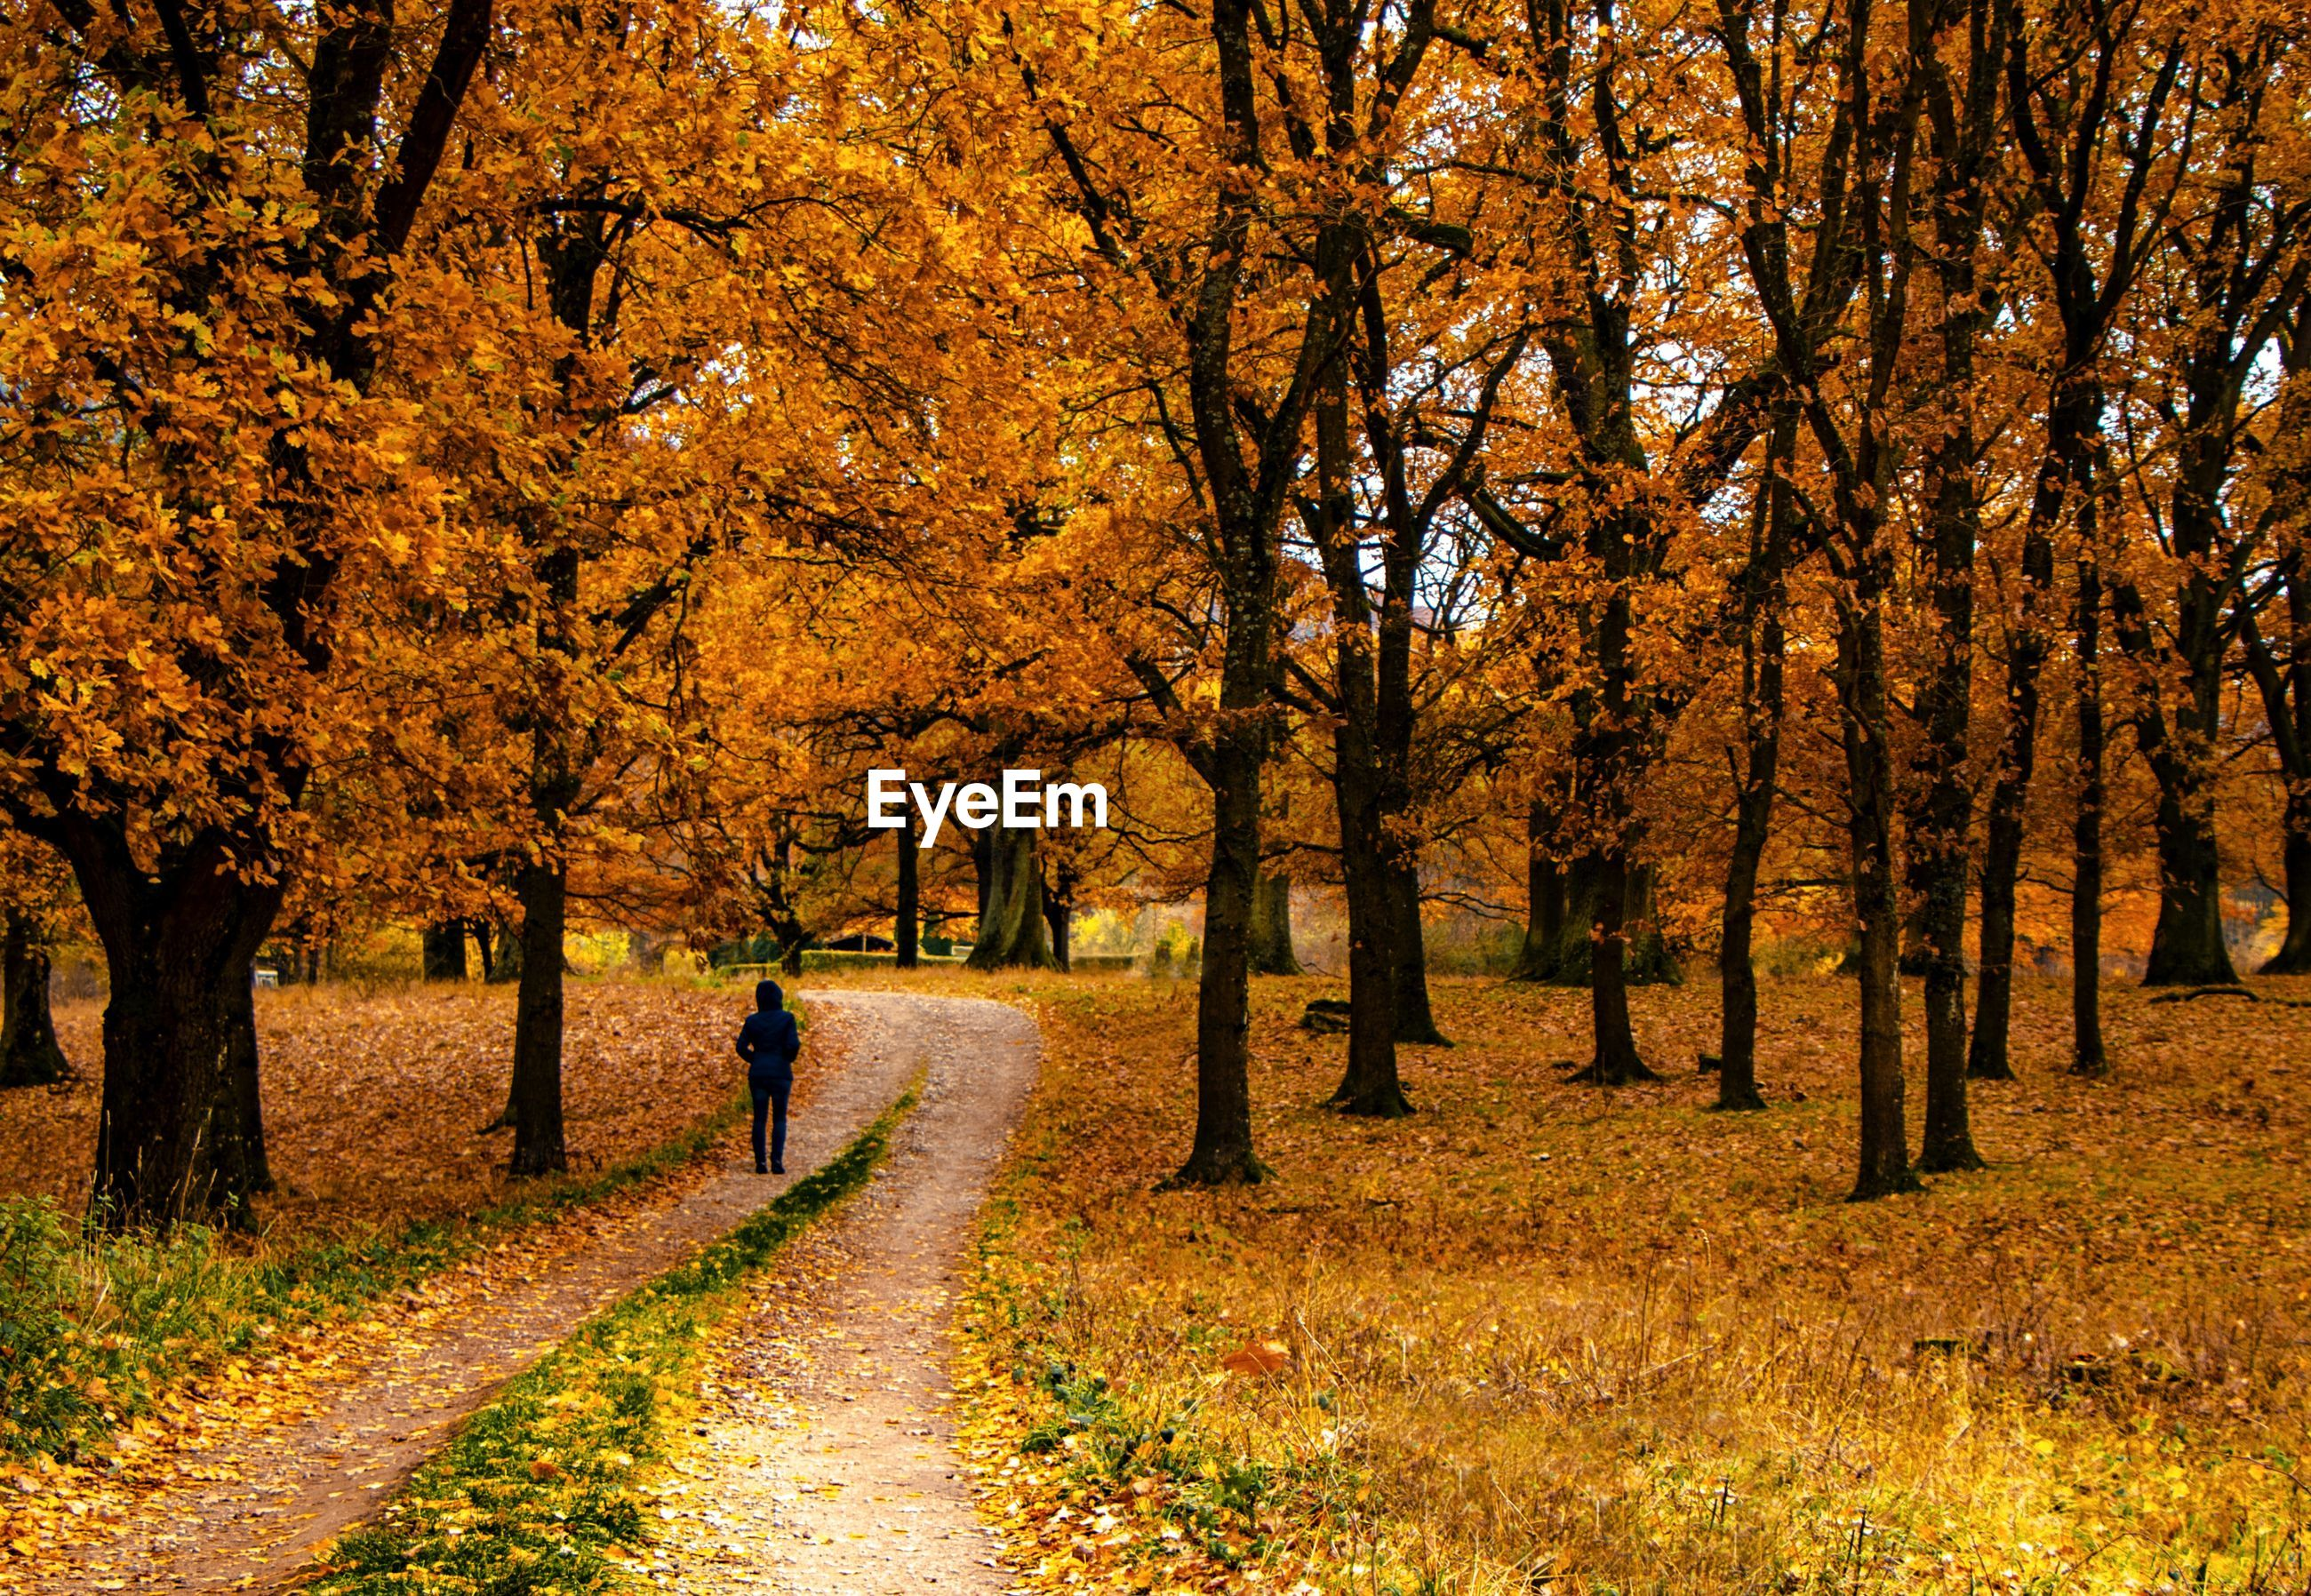 Woman standing on footpath amidst trees during autumn